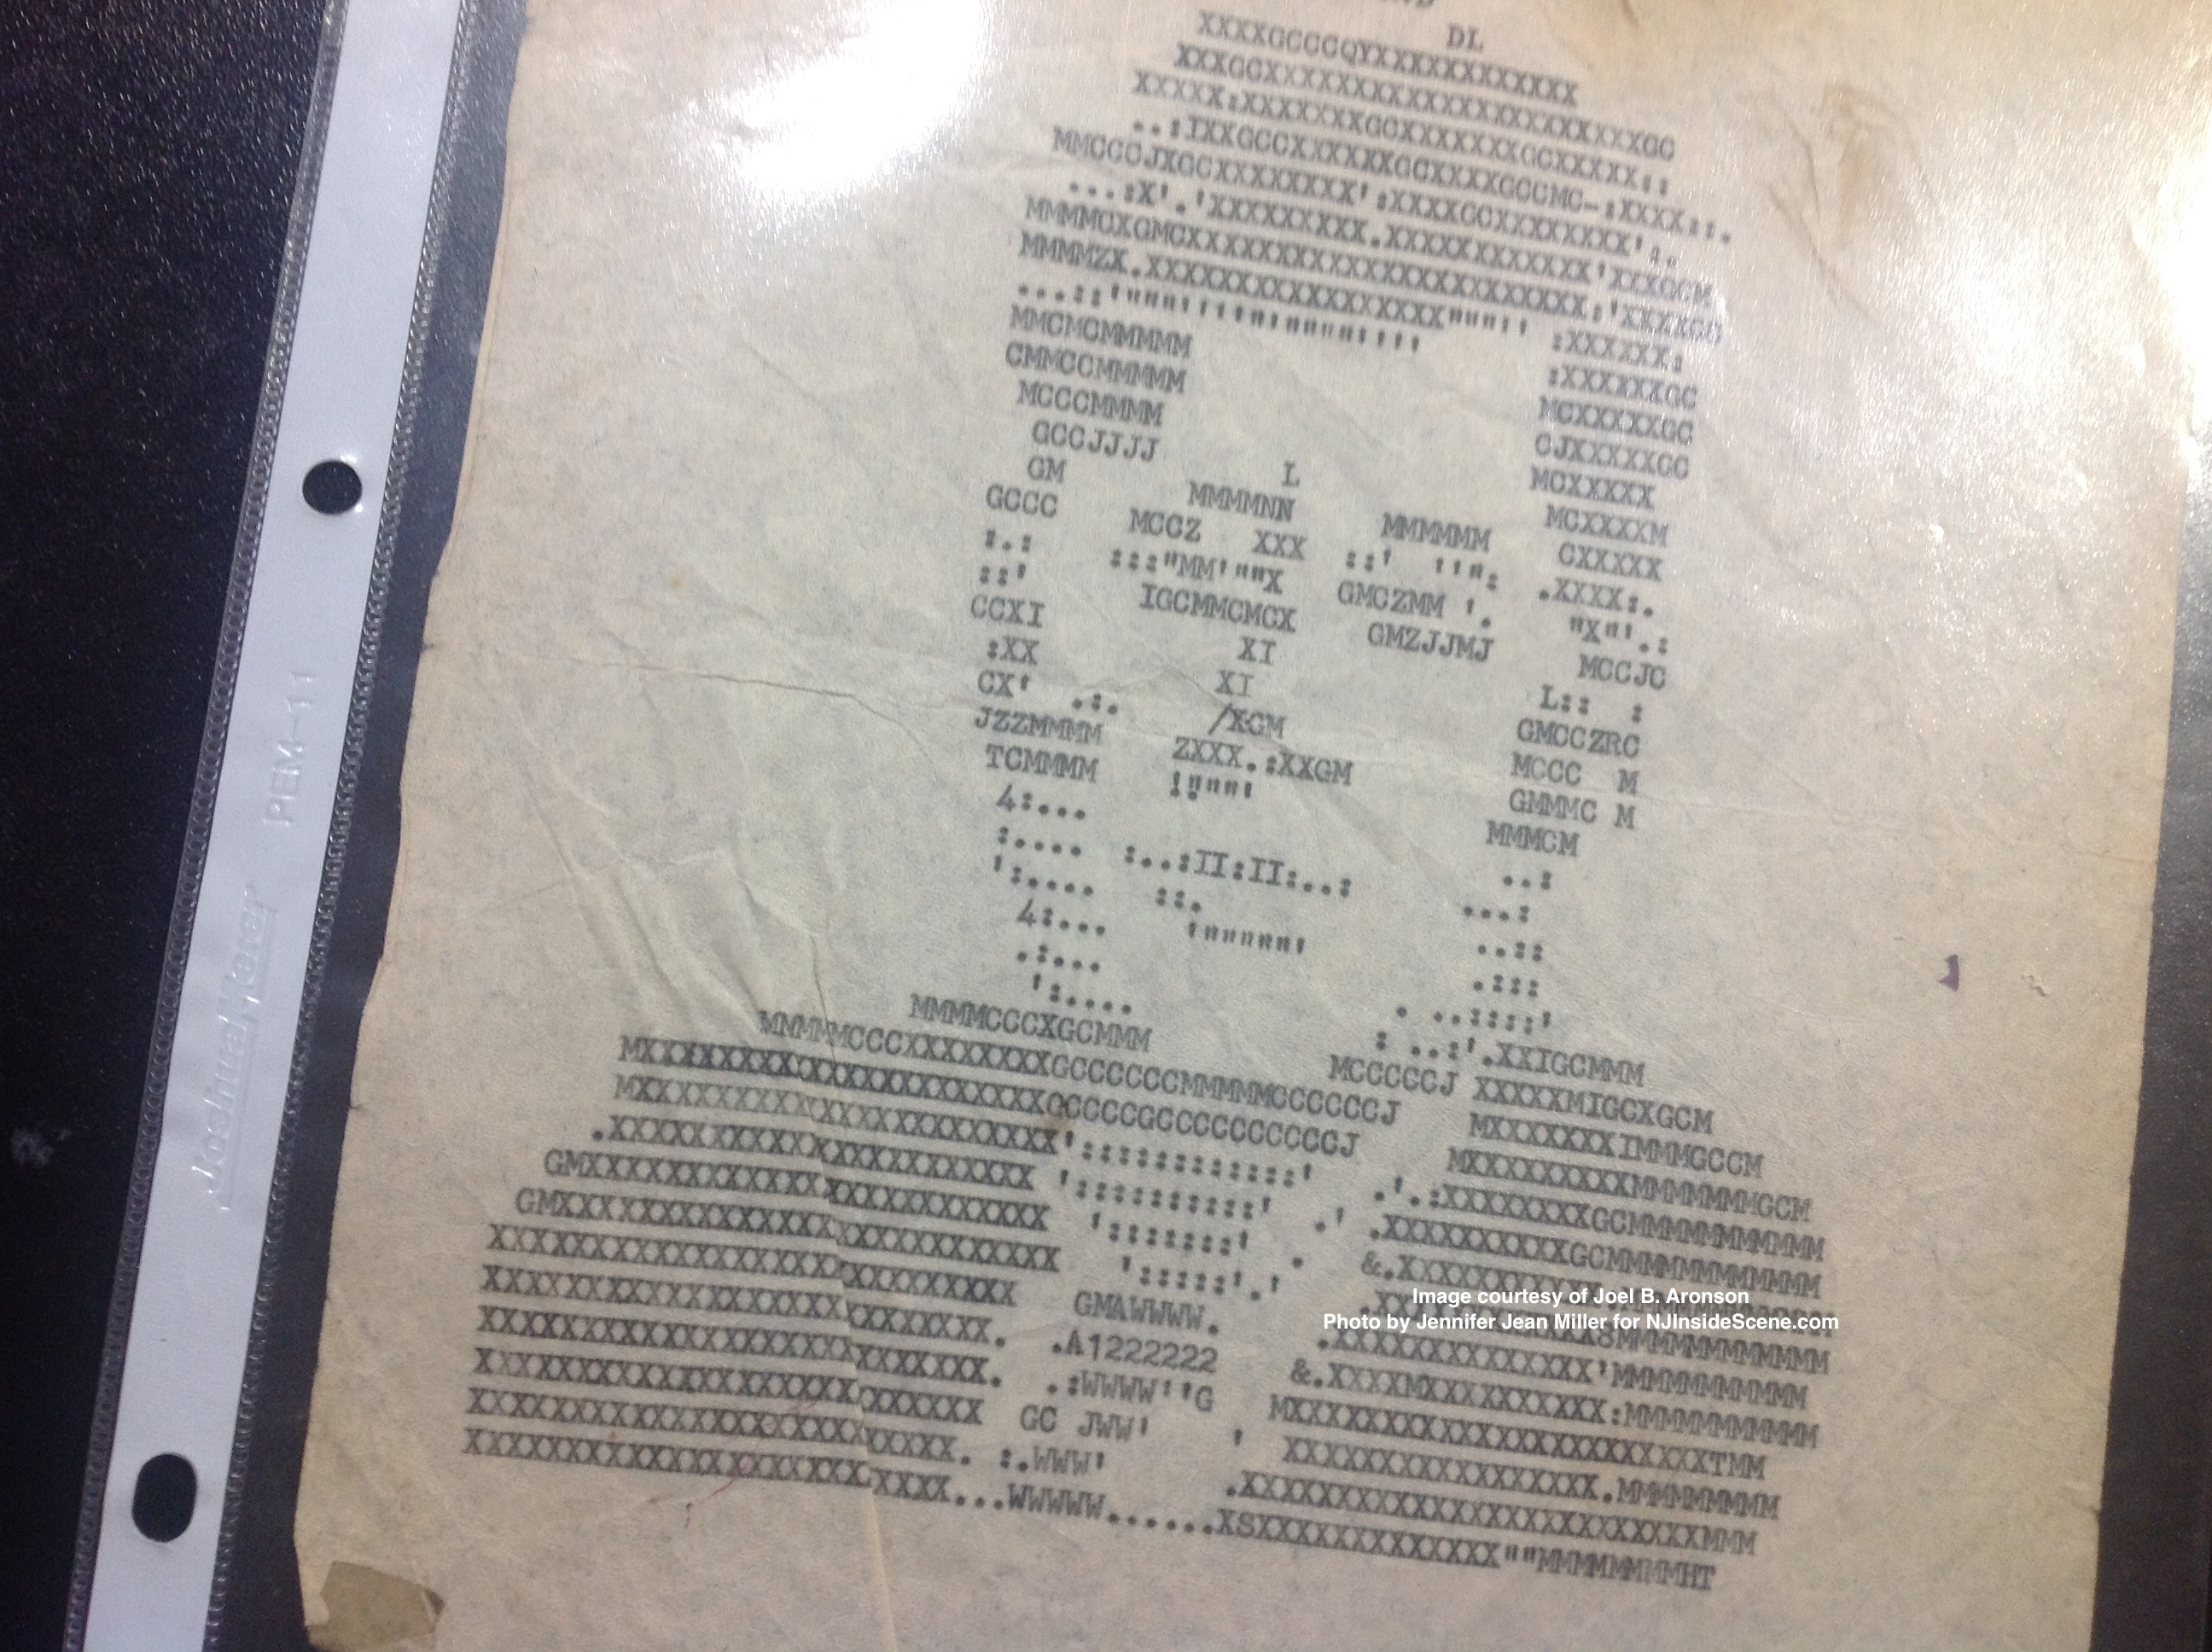 The onion skin typewriter portrait of JFK, created by an unidentified airman in Taiwan, during his presidency.